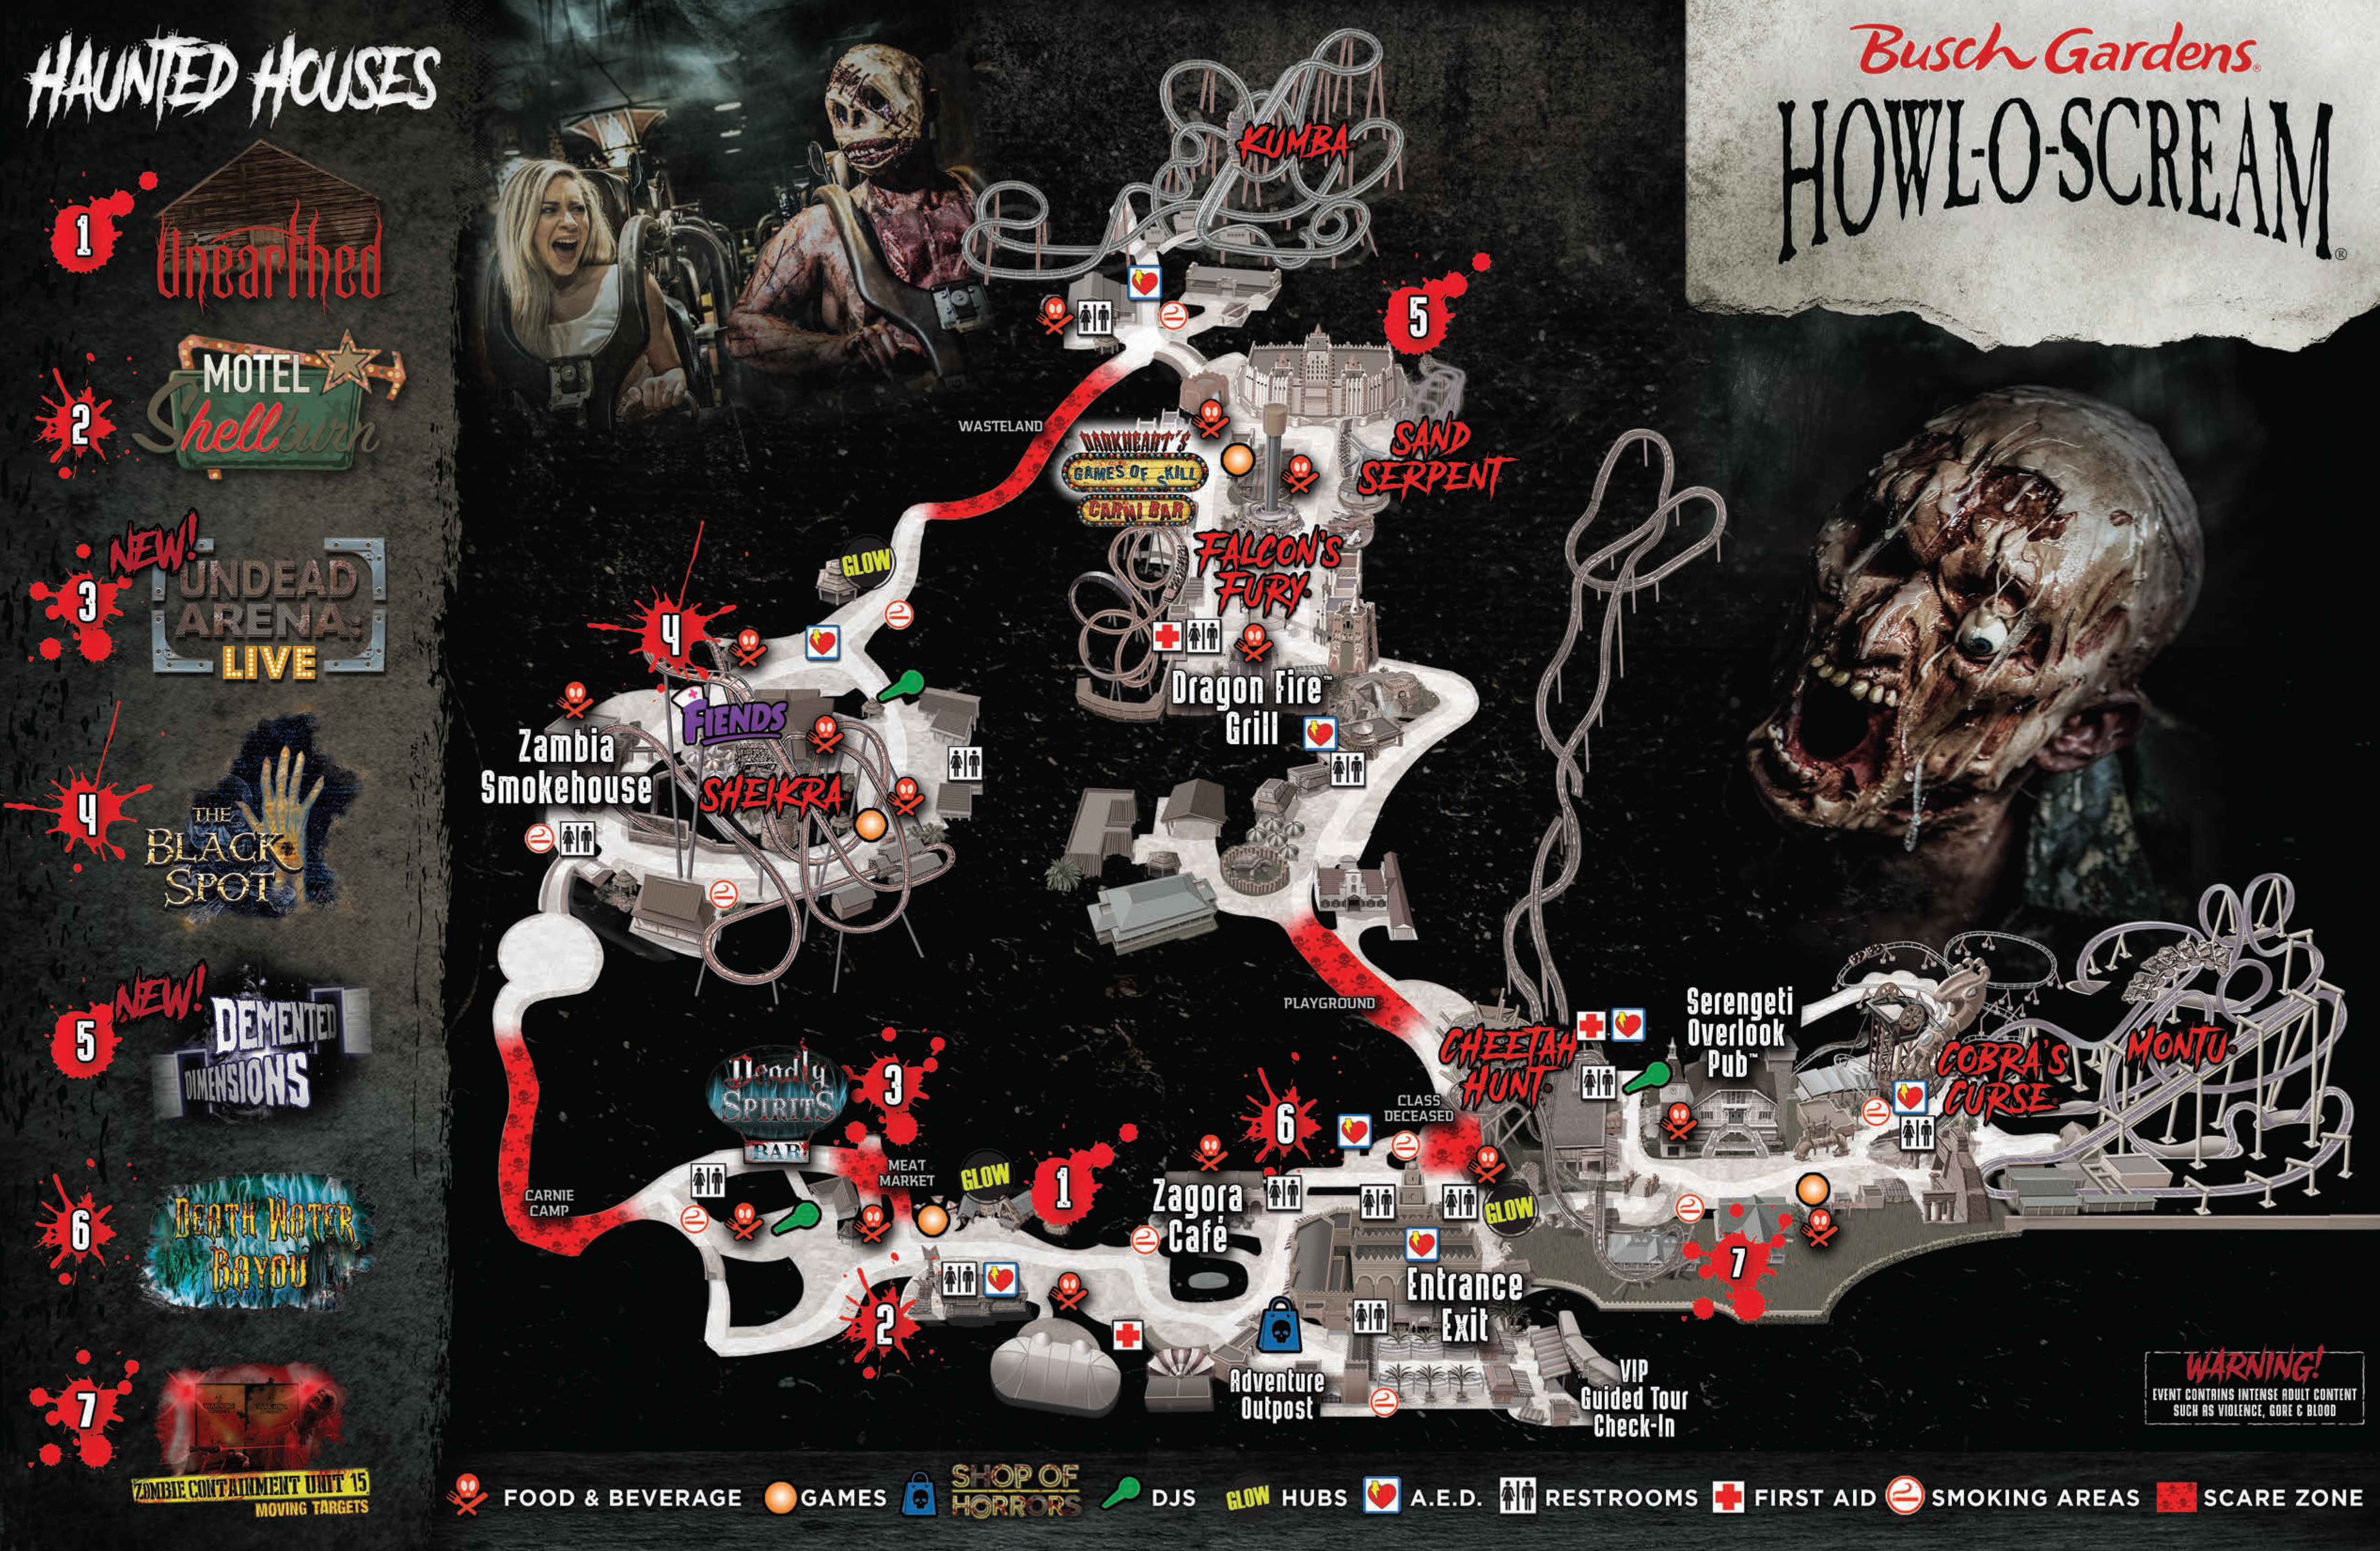 Howl o scream awful lines - Review of Busch Gardens, Tampa ...